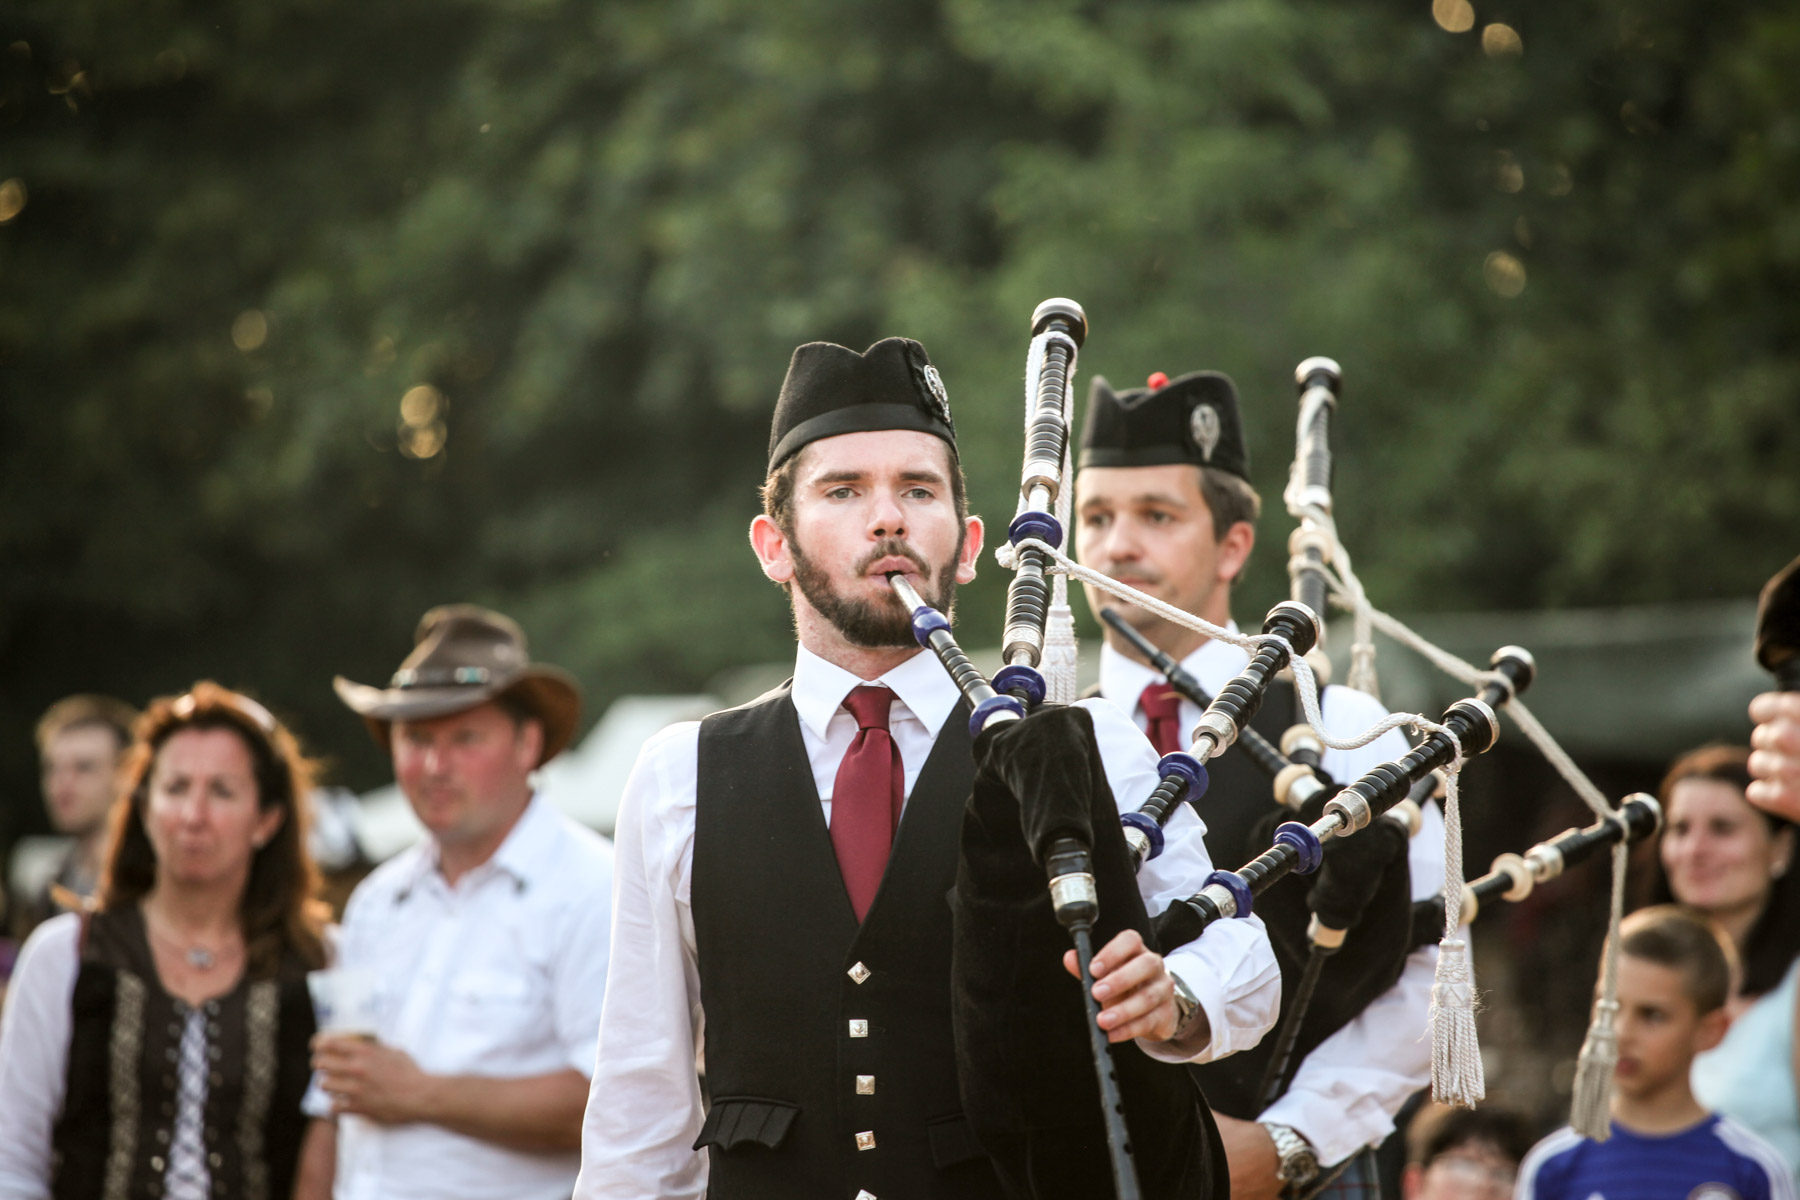 Donauinselfest: Vienna Pipes And Drums At The Donauinselfest 2016